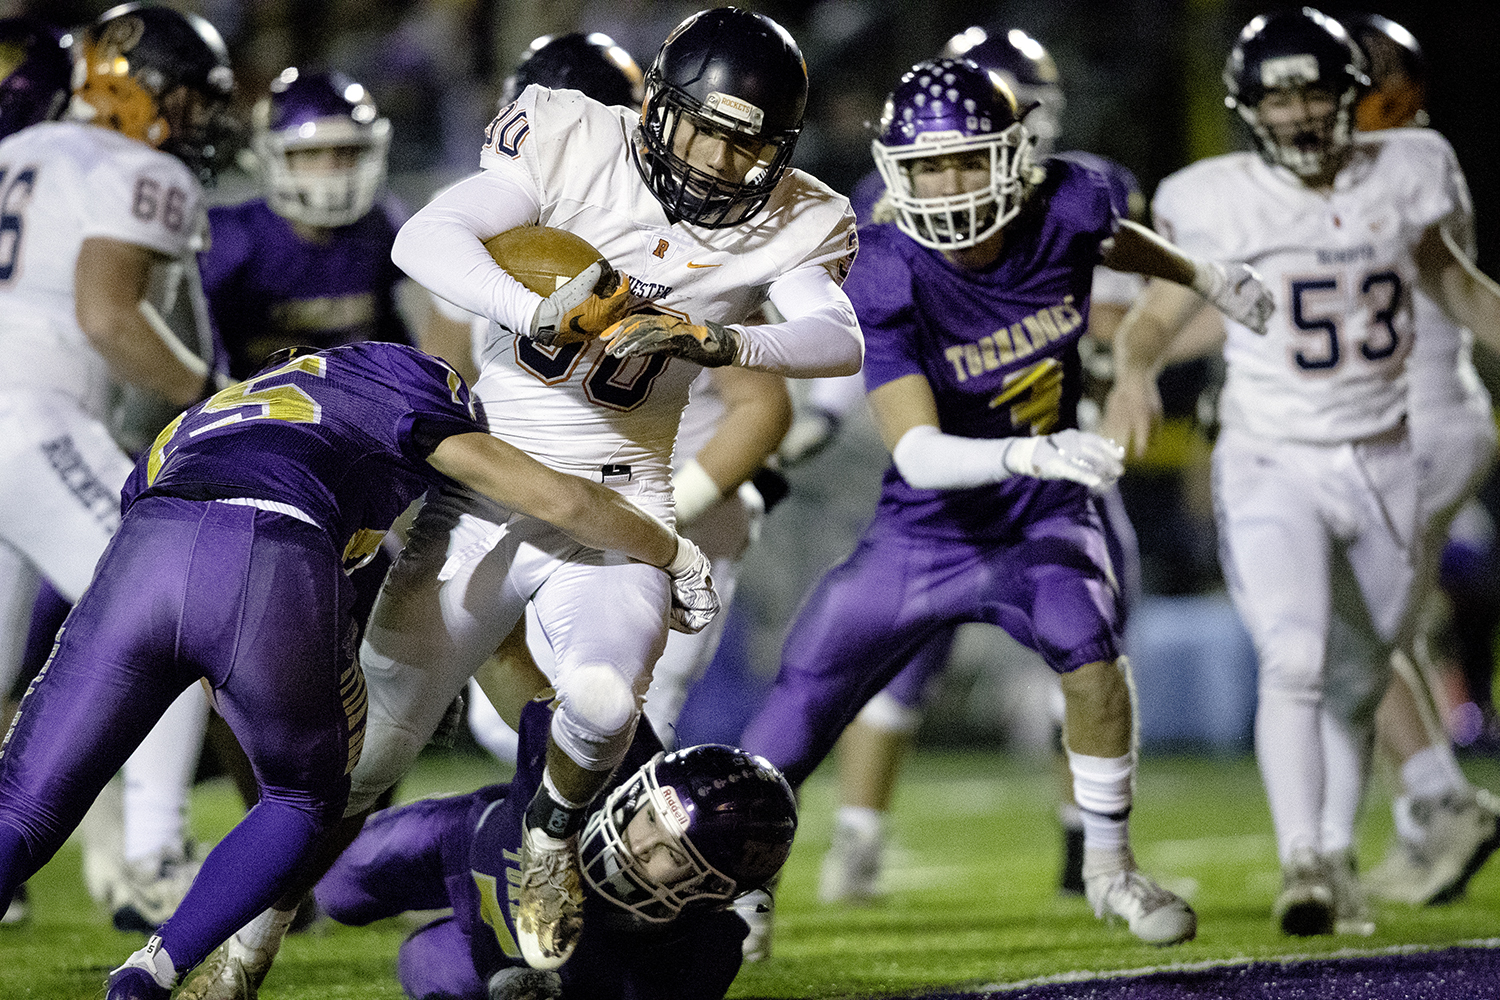 Rochester's Zach Gleeson plows into the endzone for a touchdown against Taylorville during the Class 4A quarterfinals in Taylorville Saturday, Nov. 10, 2018. [Ted Schurter/The State Journal-Register]